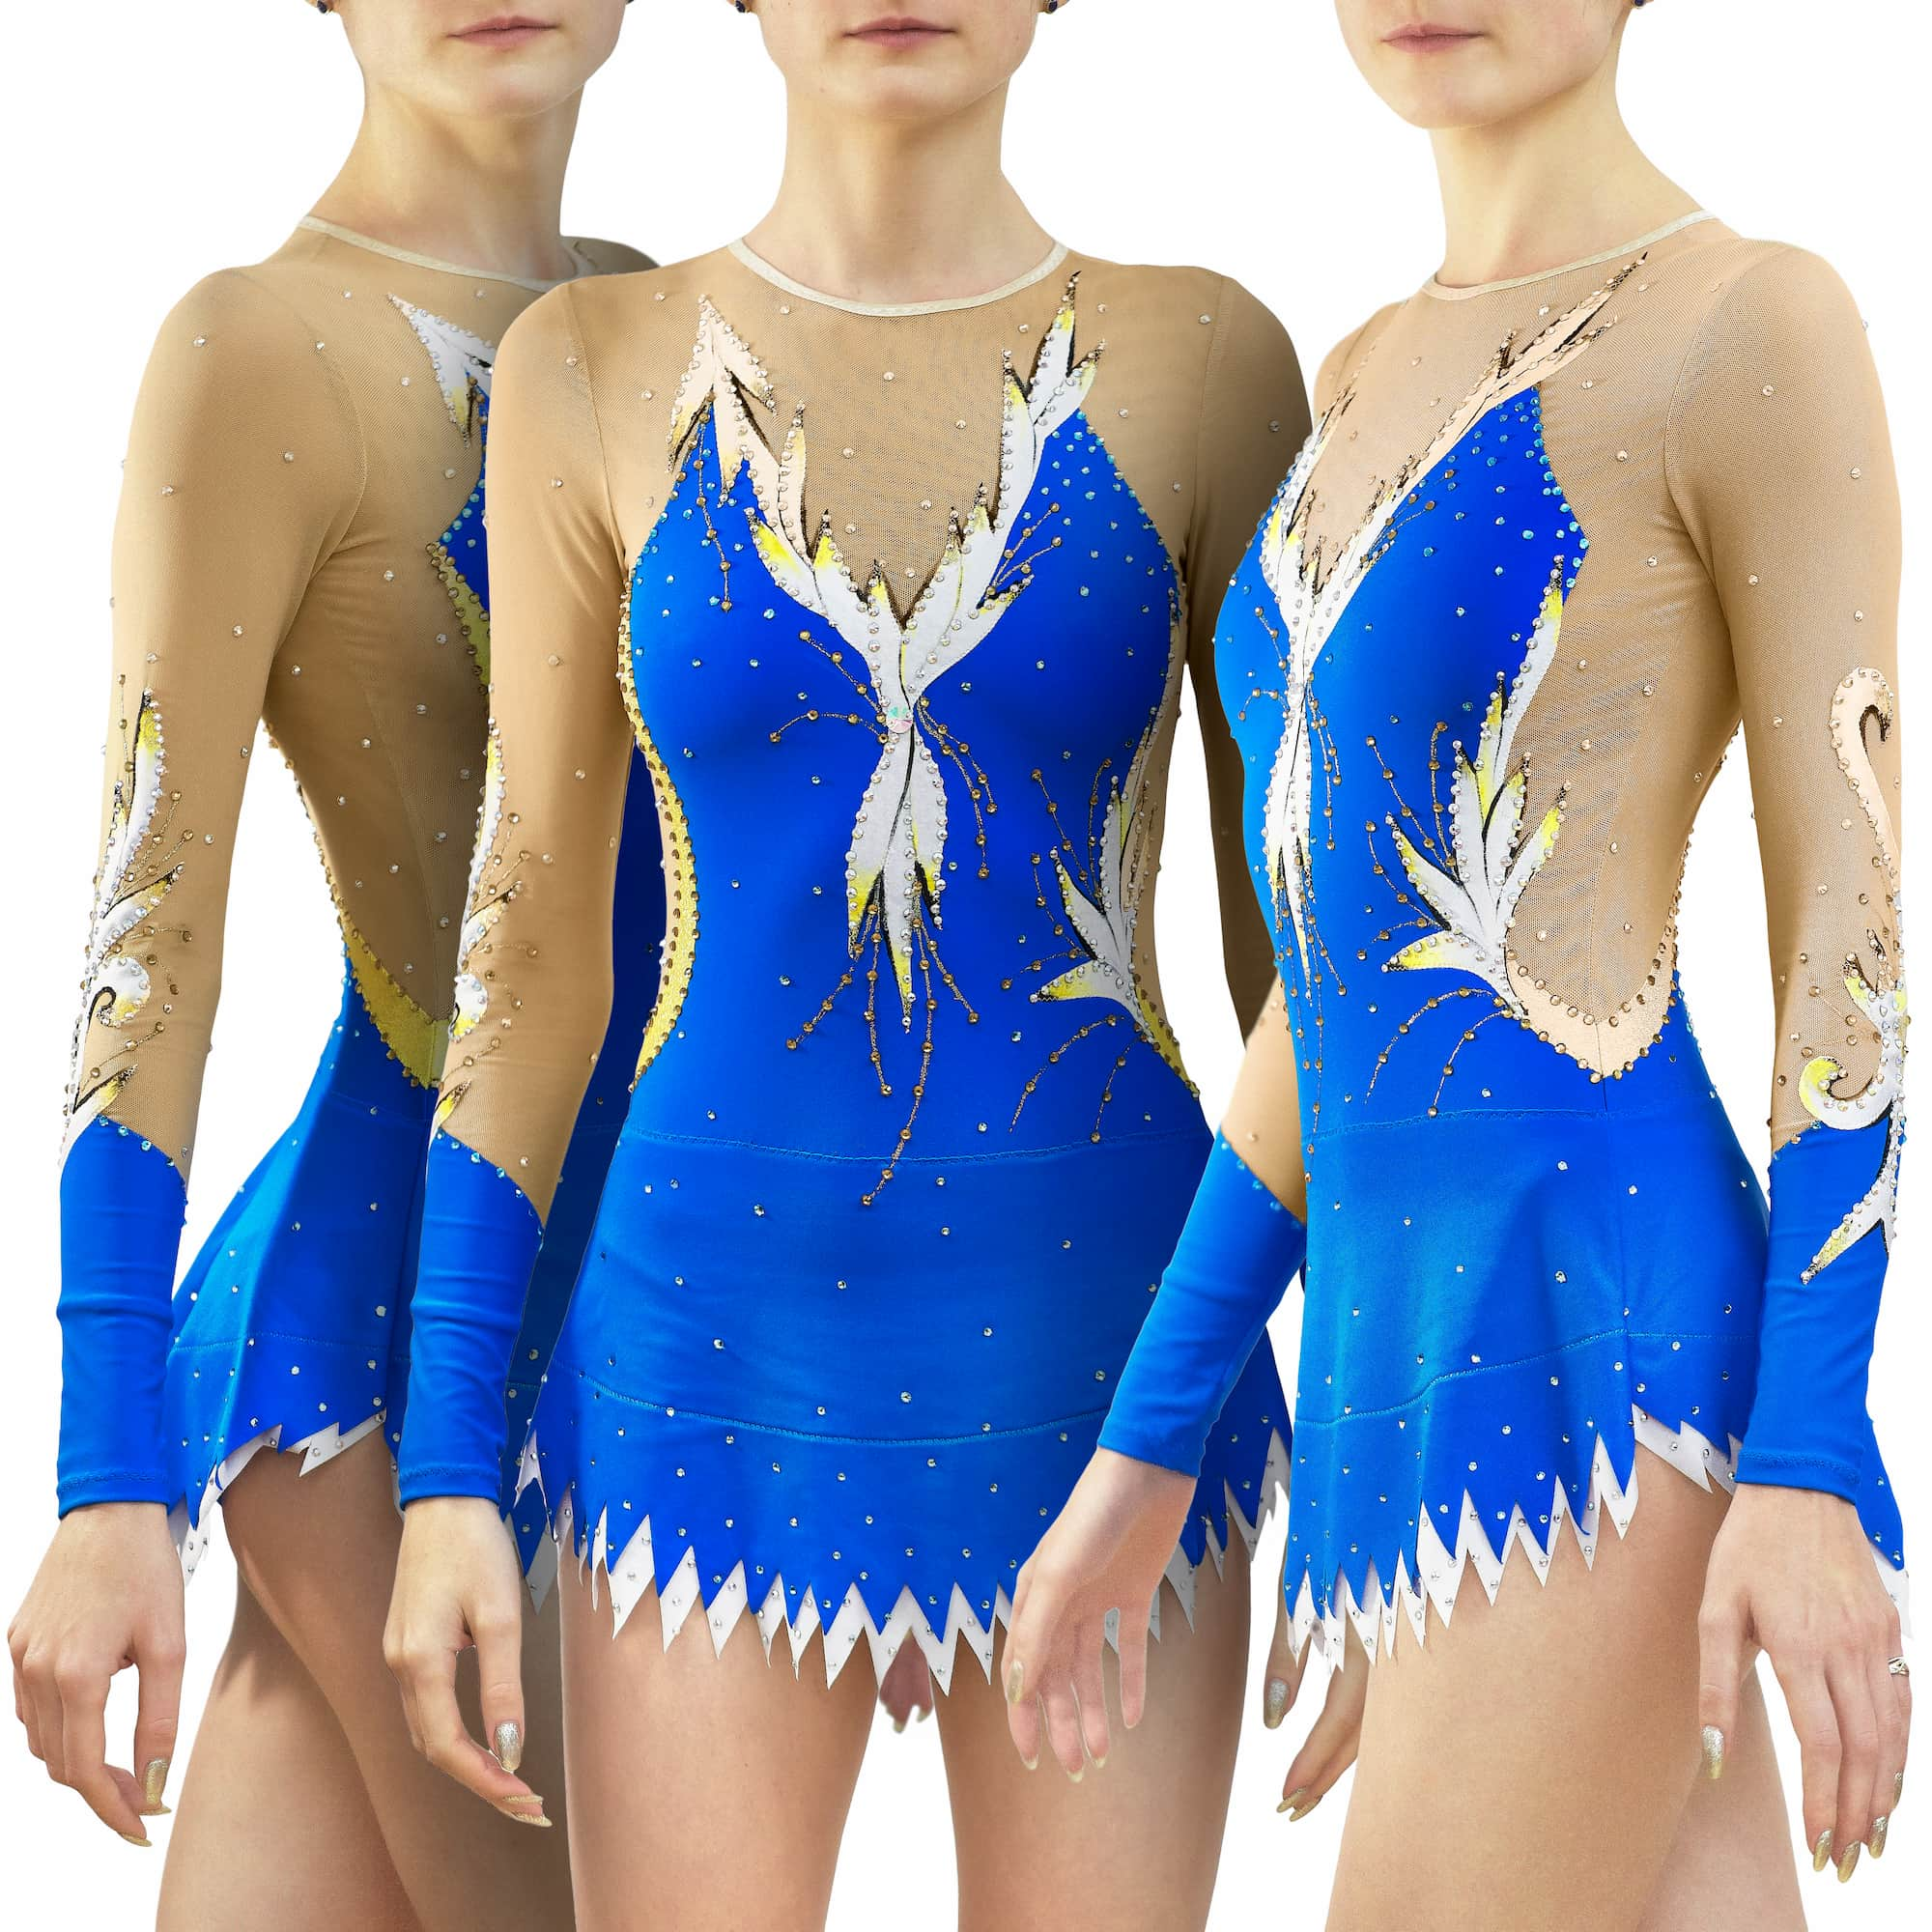 Stock Trio leotards № 236 for rhythmic gymnastics